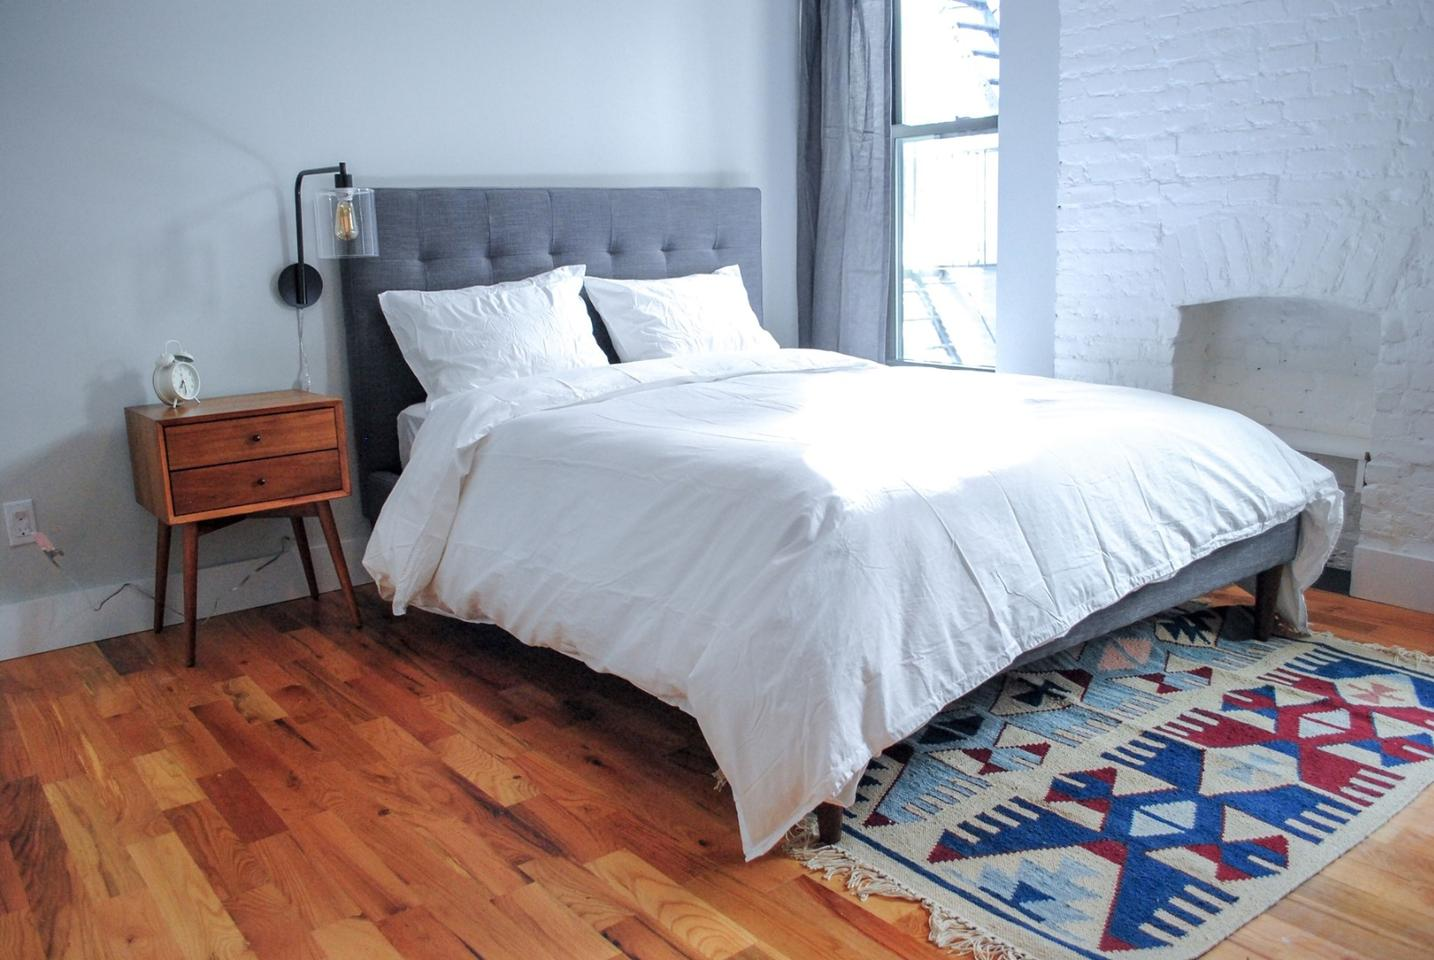 Common's Crown Heights houses 19 private bedrooms across four floors of living space